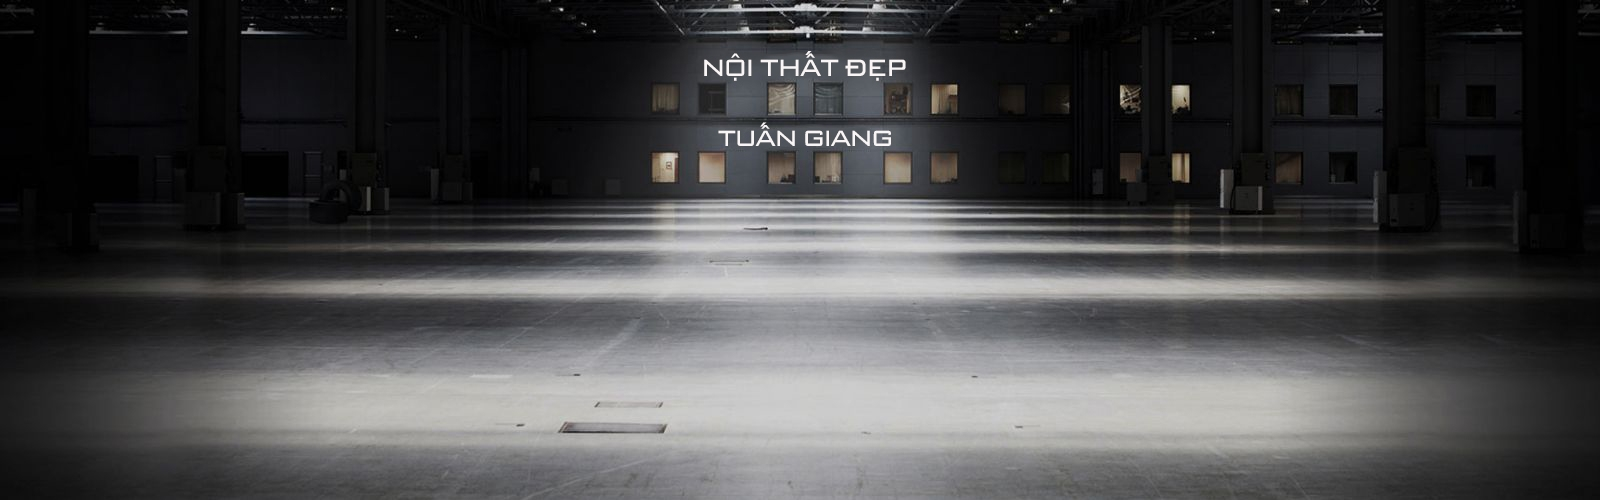 Nội Thất  (@tuangiang) Cover Image